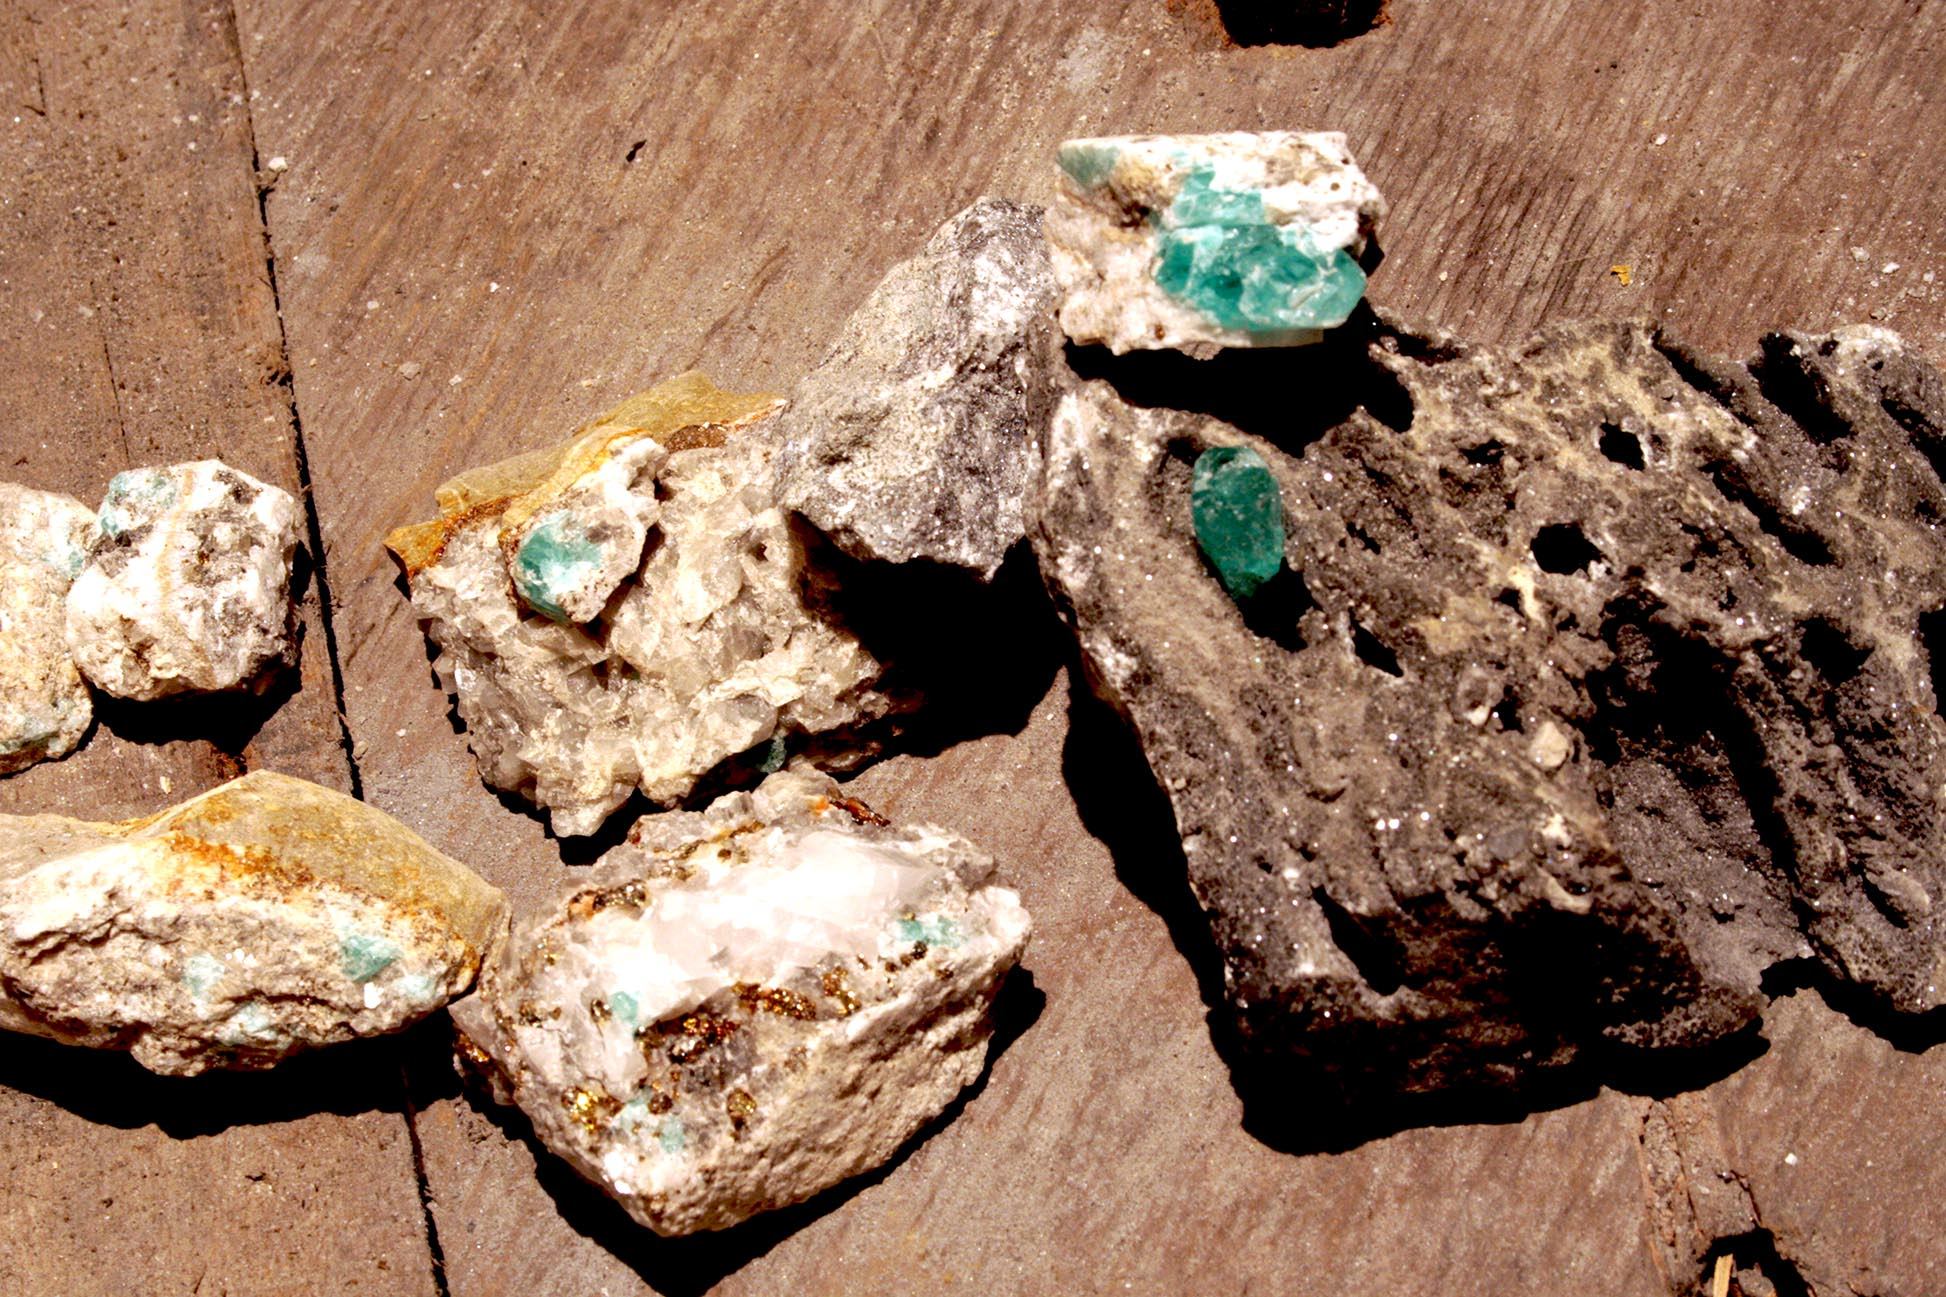 Honoka's Previous ExhibitionsRaw Emerald Mining with Honoka